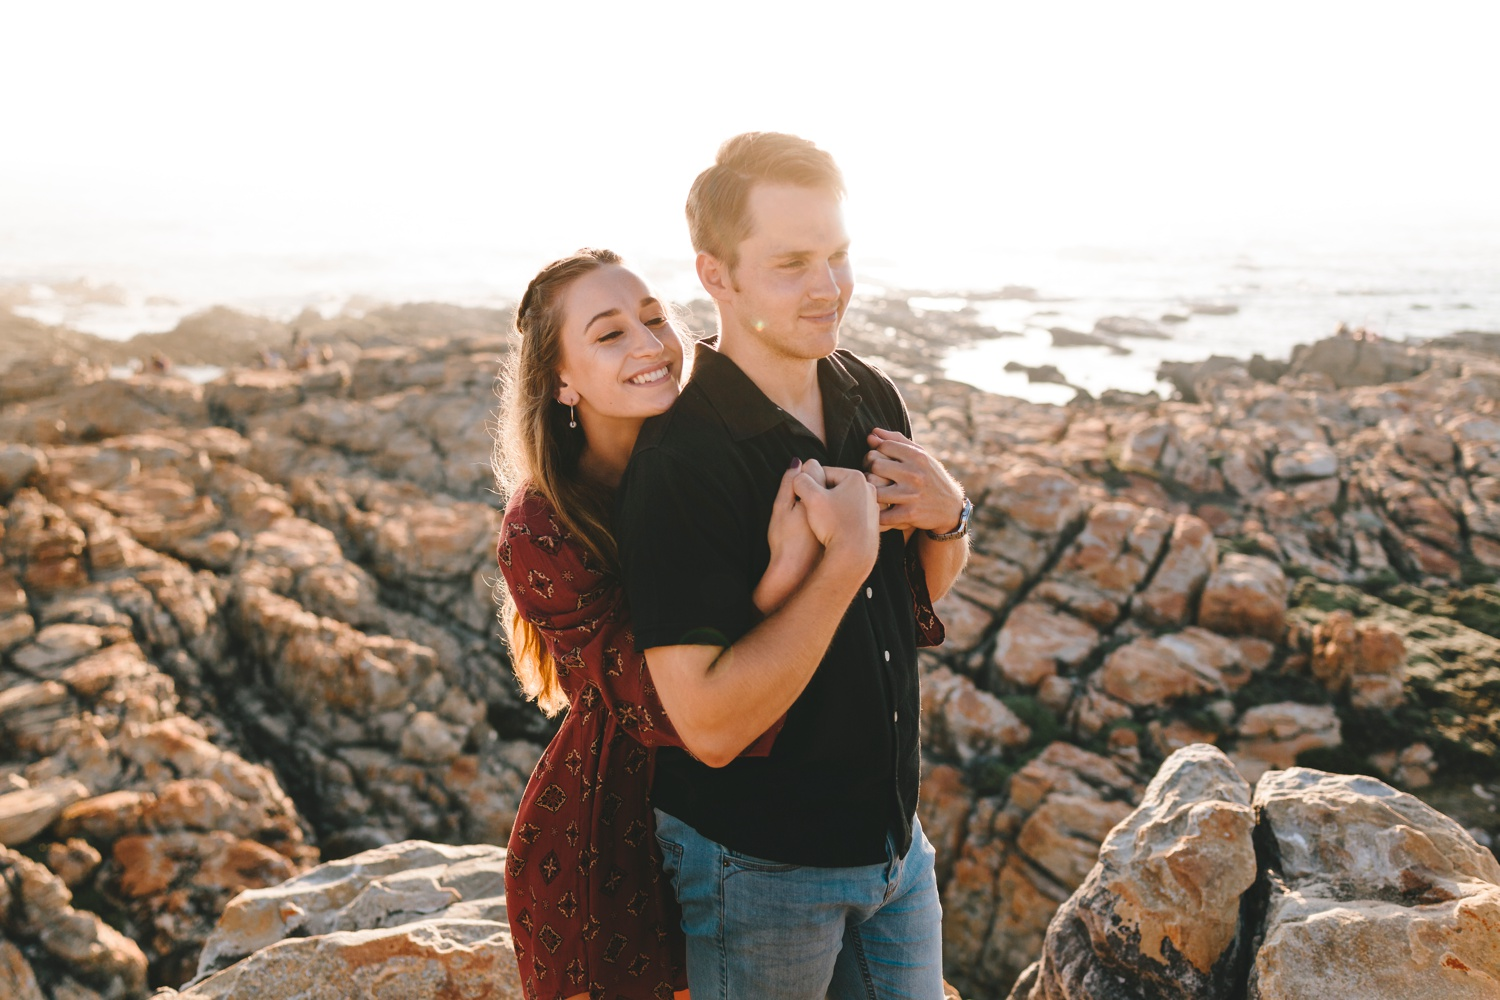 Marie&Andre-CharlieRay-st-francis-cape-ocean-wild-side-couple_0526.jpg